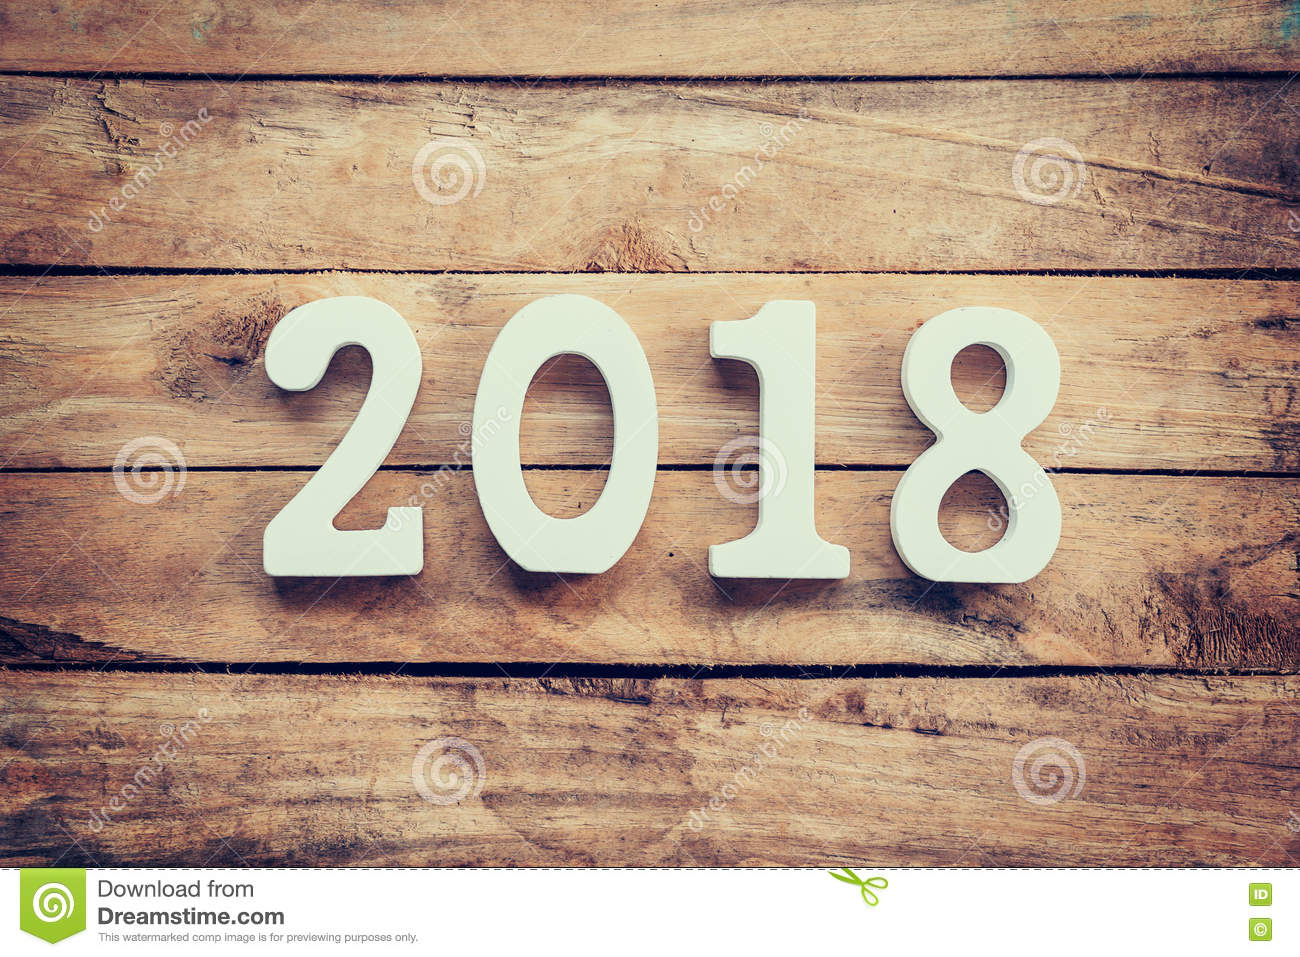 Wooden numbers forming the number 2018, For the new year 2018 on